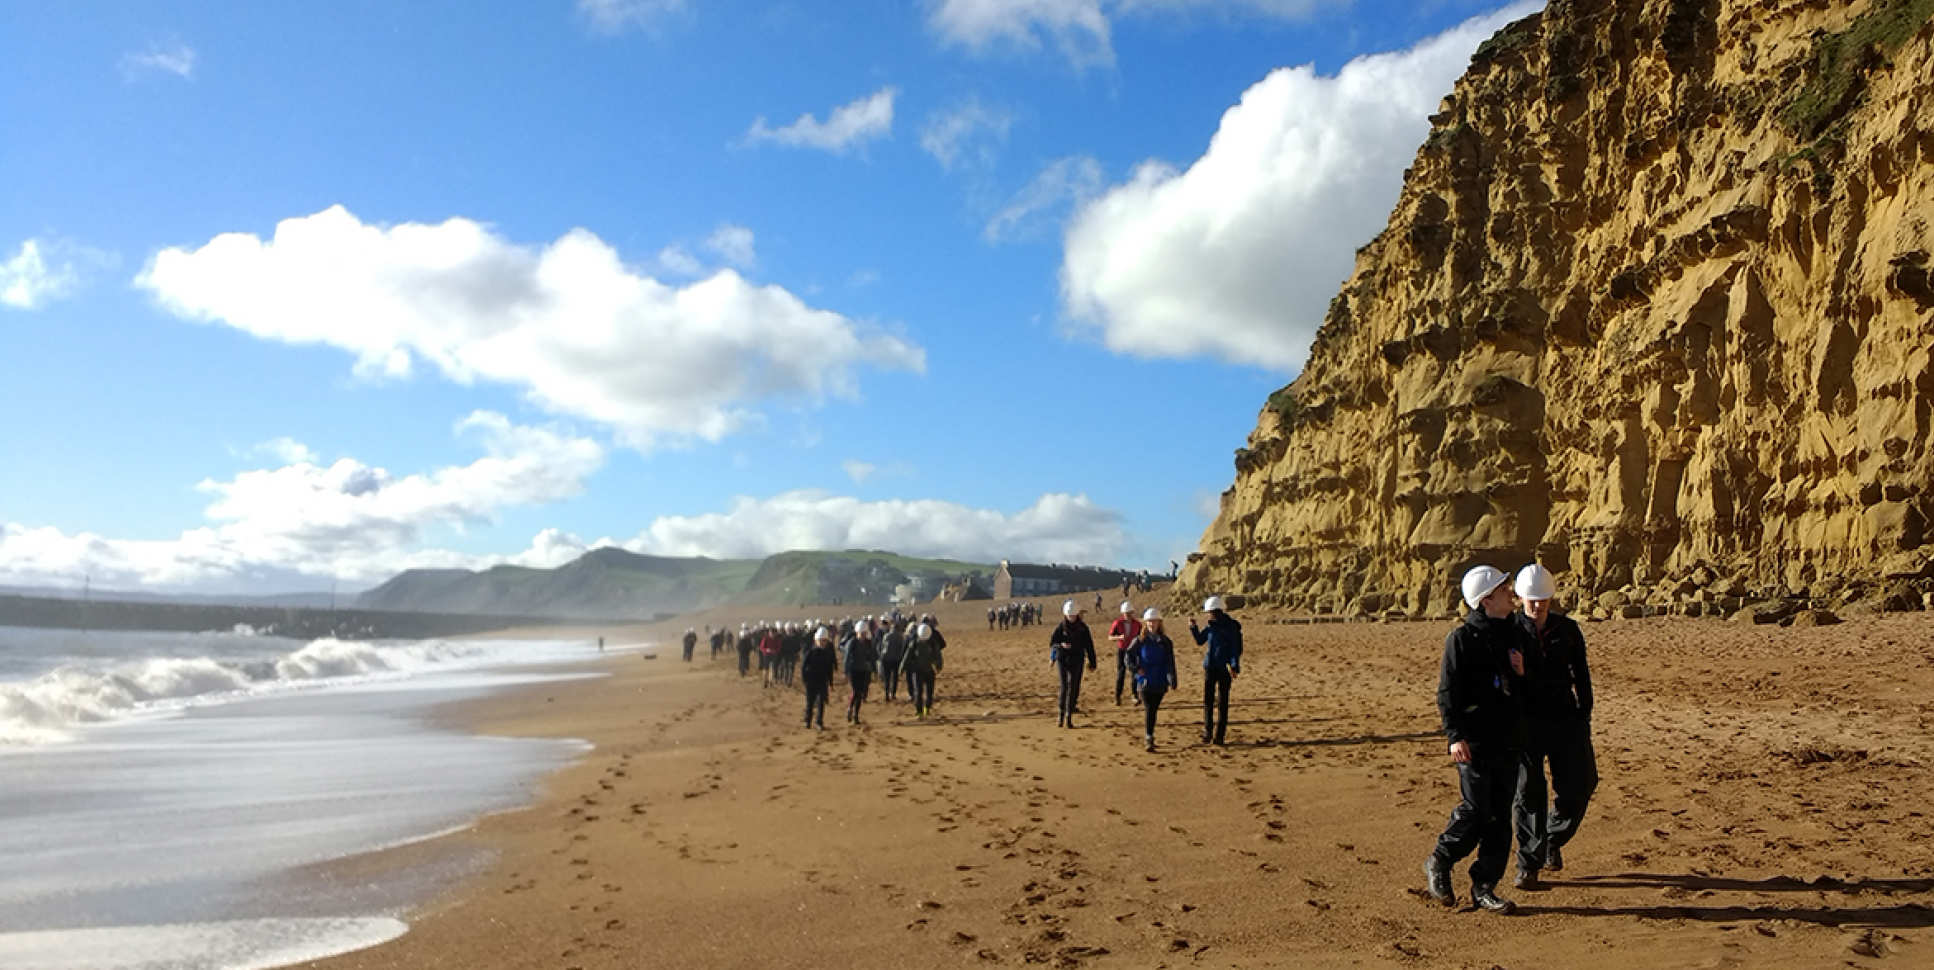 Students walk on the beach next to cliffs during Dorset 2017 undergraduate field trip